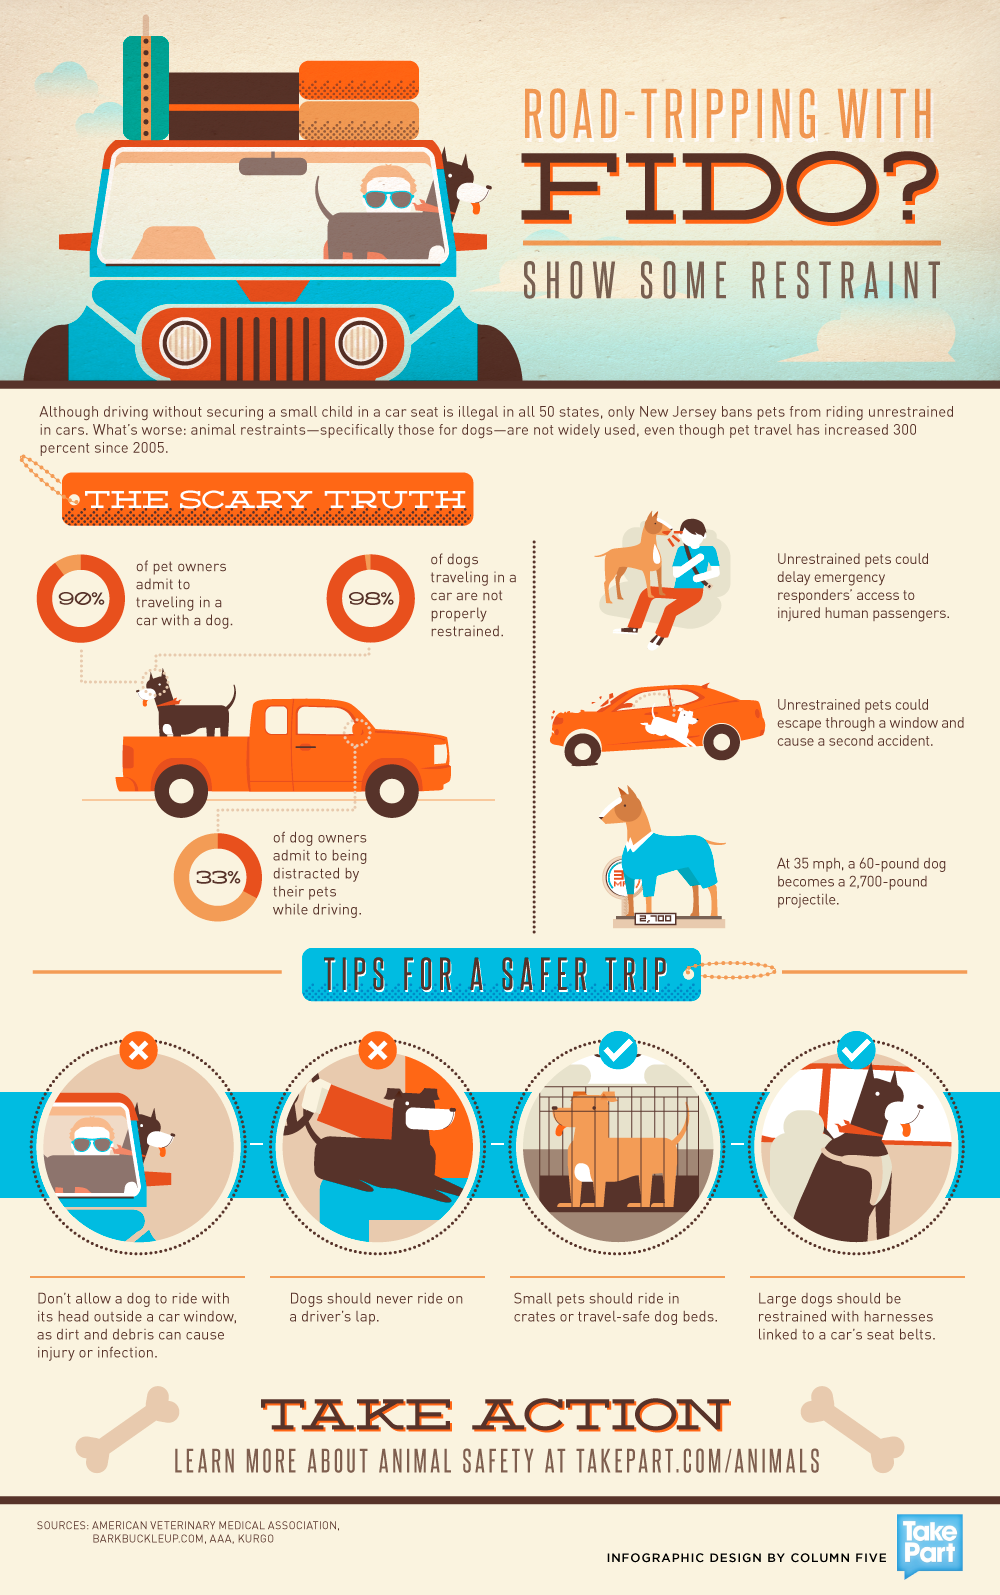 roadtripping-with-fido-how-to-safely-travel-with-your-pet_5029196631c6a